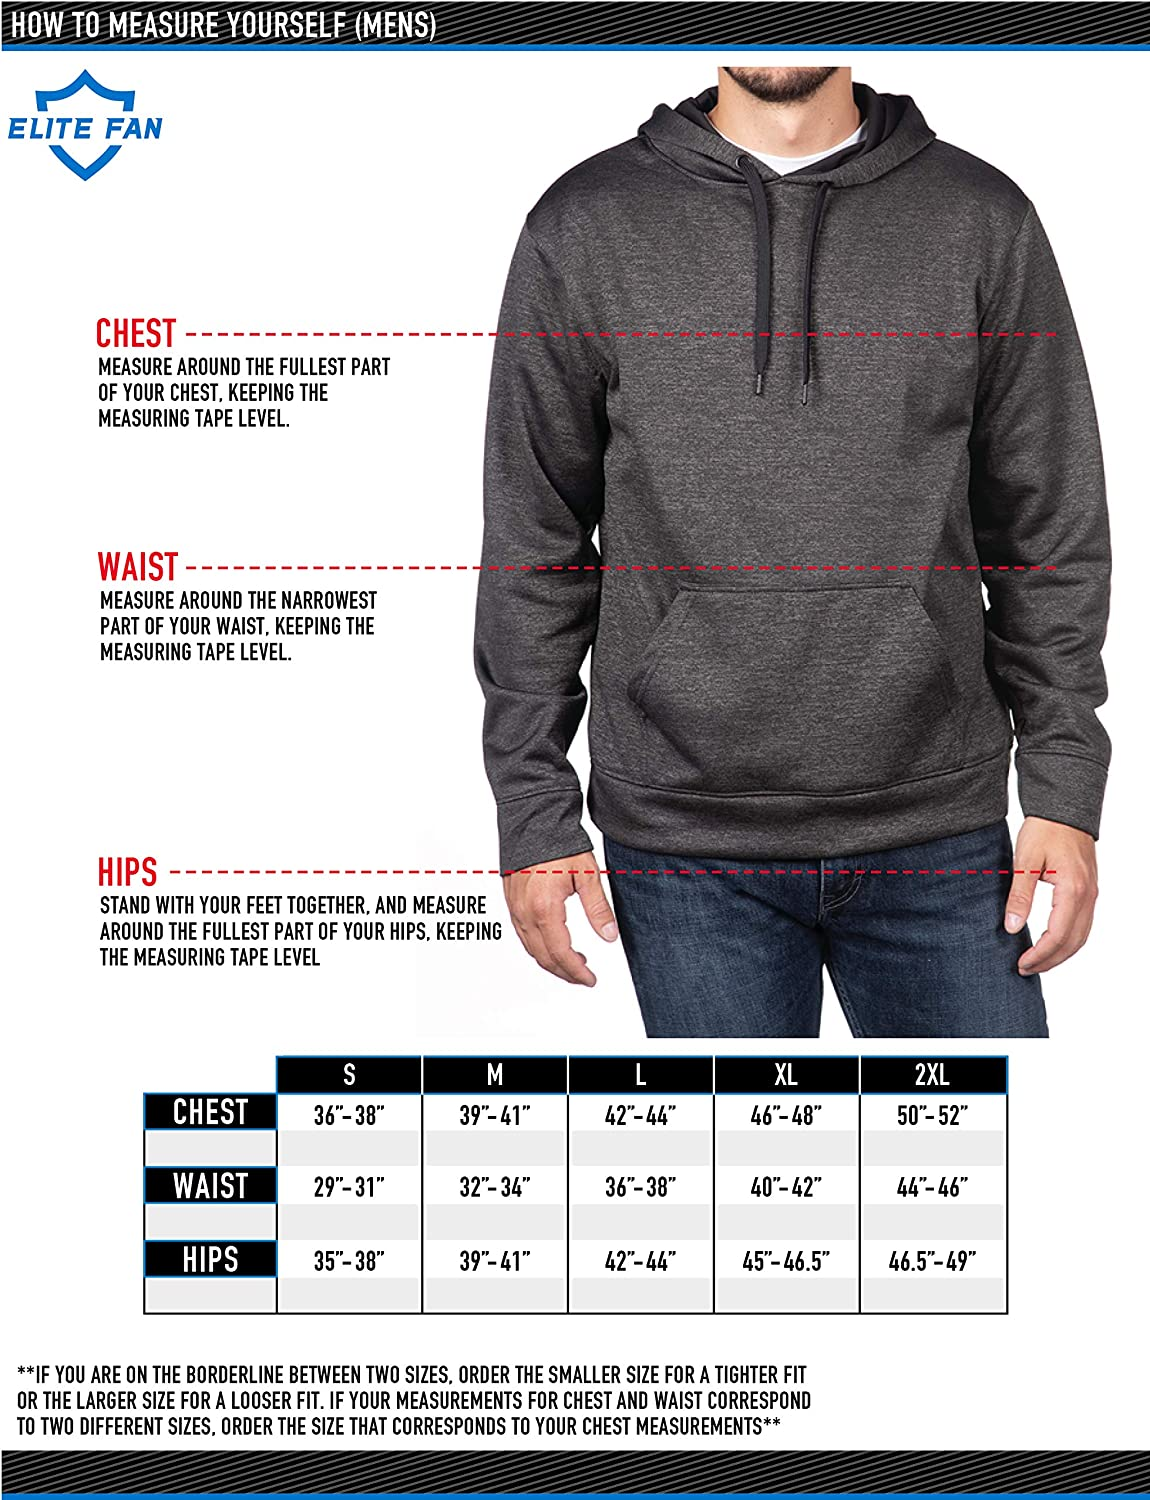 Top of the World Mens Fit White Team Arch Premium Fabric Hoodie Sweatshirt